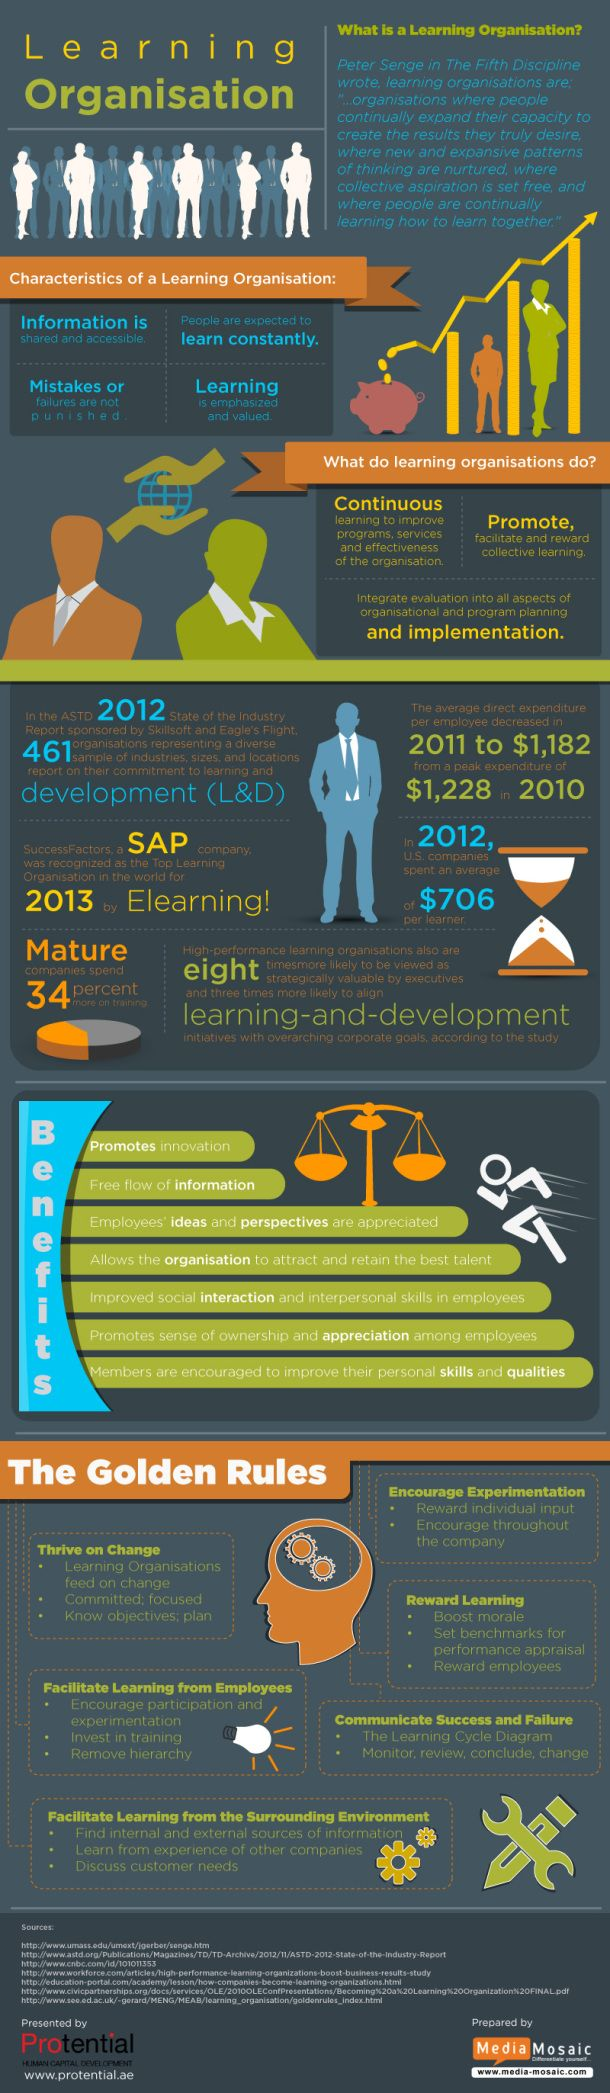 E learning poster designs - 92 Best Infographics Digital Posters Images On Pinterest Educational Technology Instructional Design And E Learning